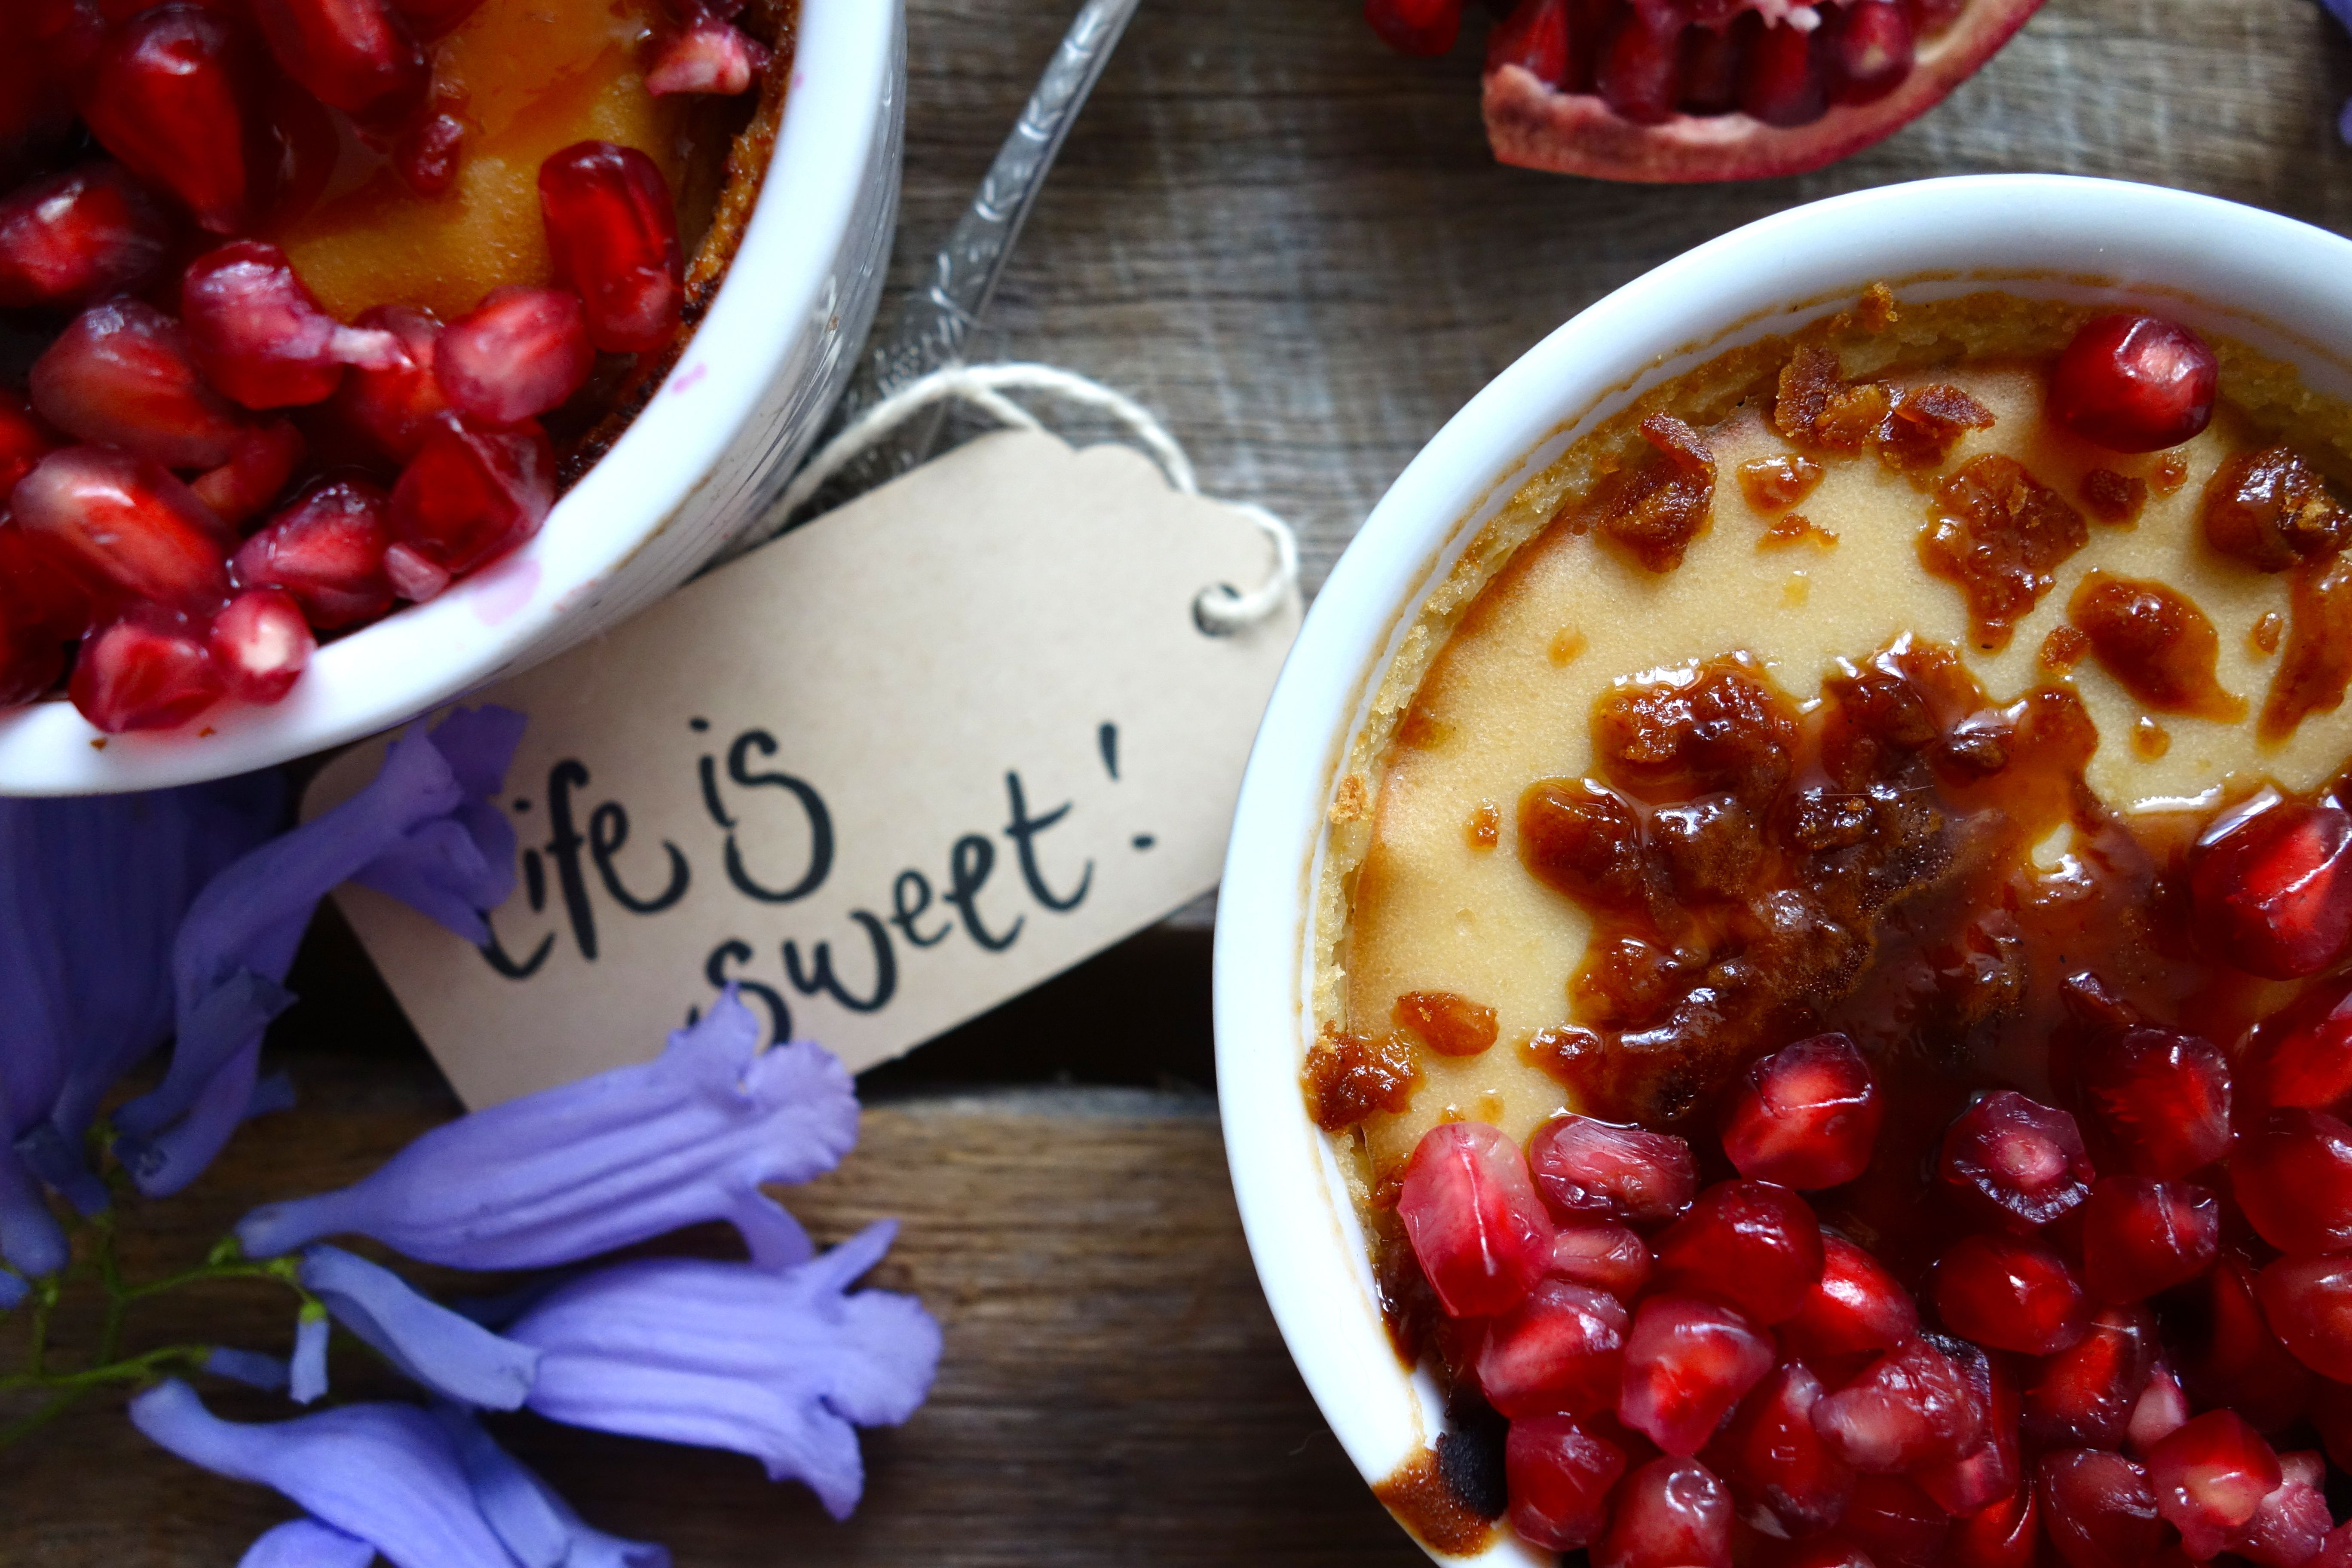 Lemon Creme Brûlée - delicious, elegant and easy (oh and completely gluten and dairy free!) <3 Find the recipe on my blog! #vegan #glutenfree #dairyfree #dessert #cremebrulee #recipe #theaccommodatingchef #healthy #homemade